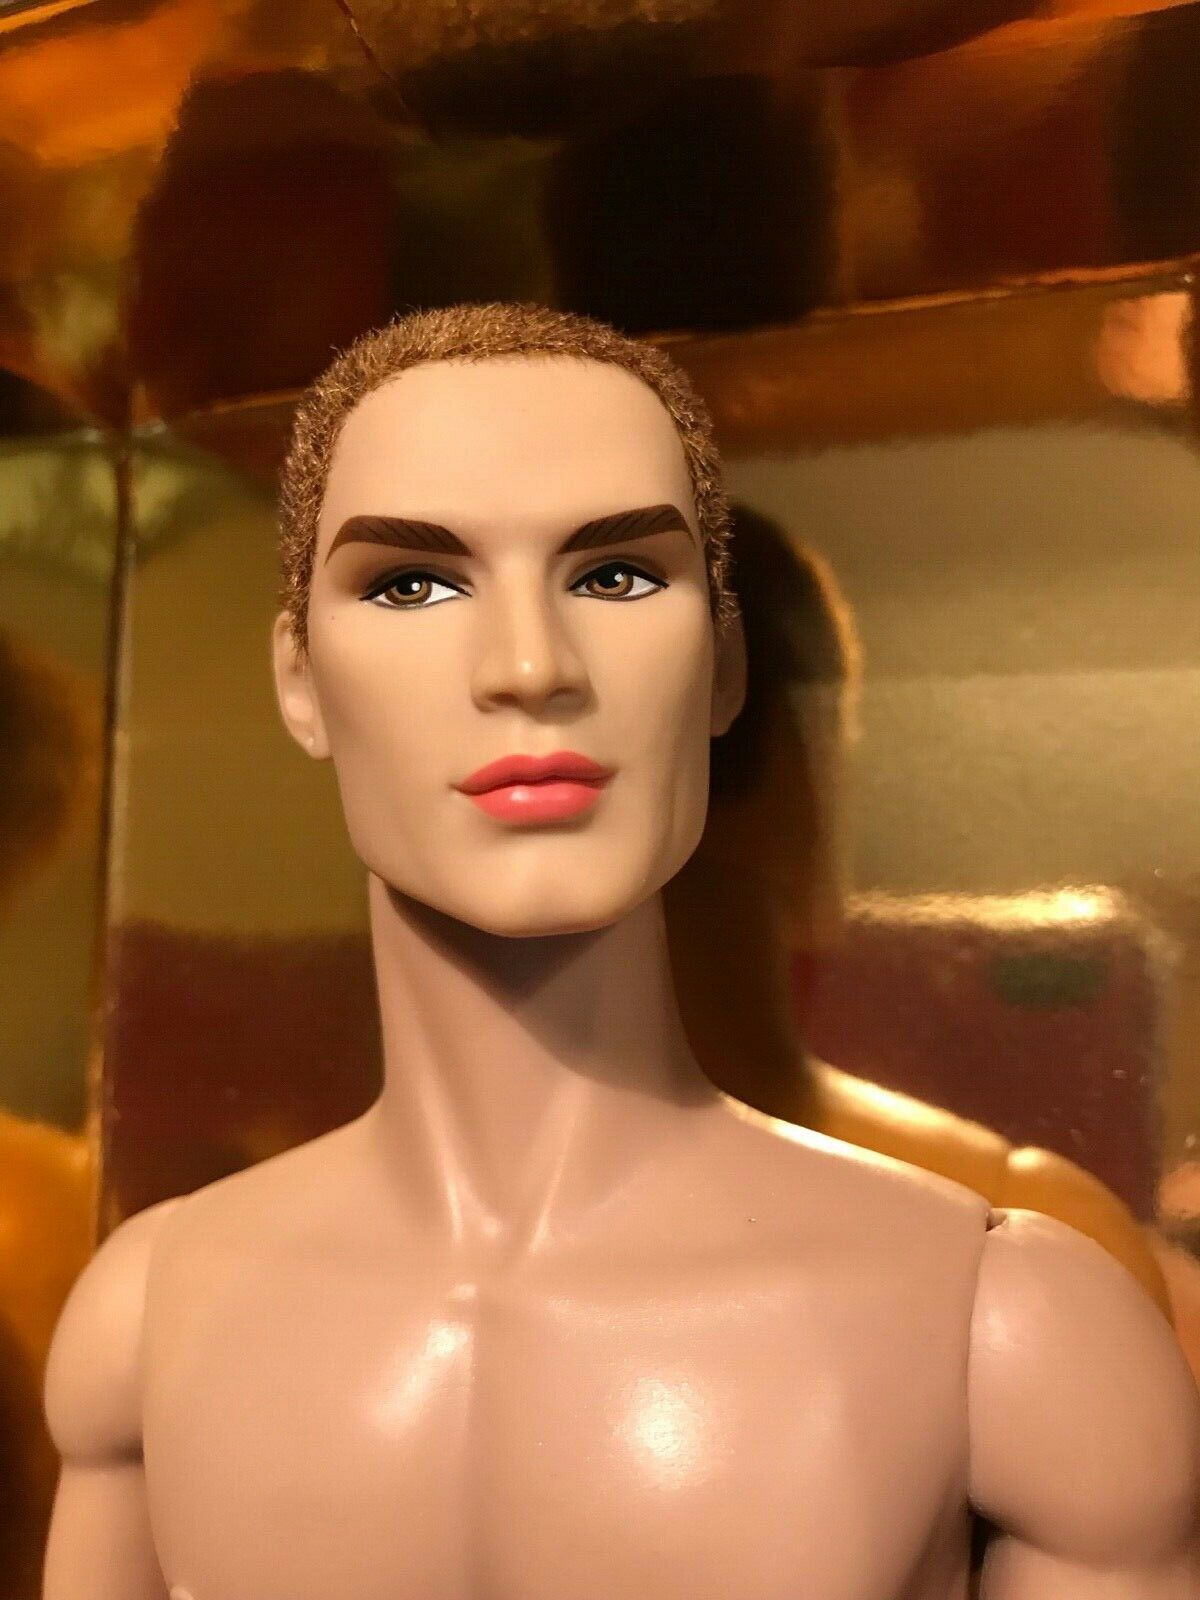 INDUSTRY MALE DOLL FROM THE LUXE LIFE CONV. 2018 BELLAMY Blau + AMPLIFIED FASHIO